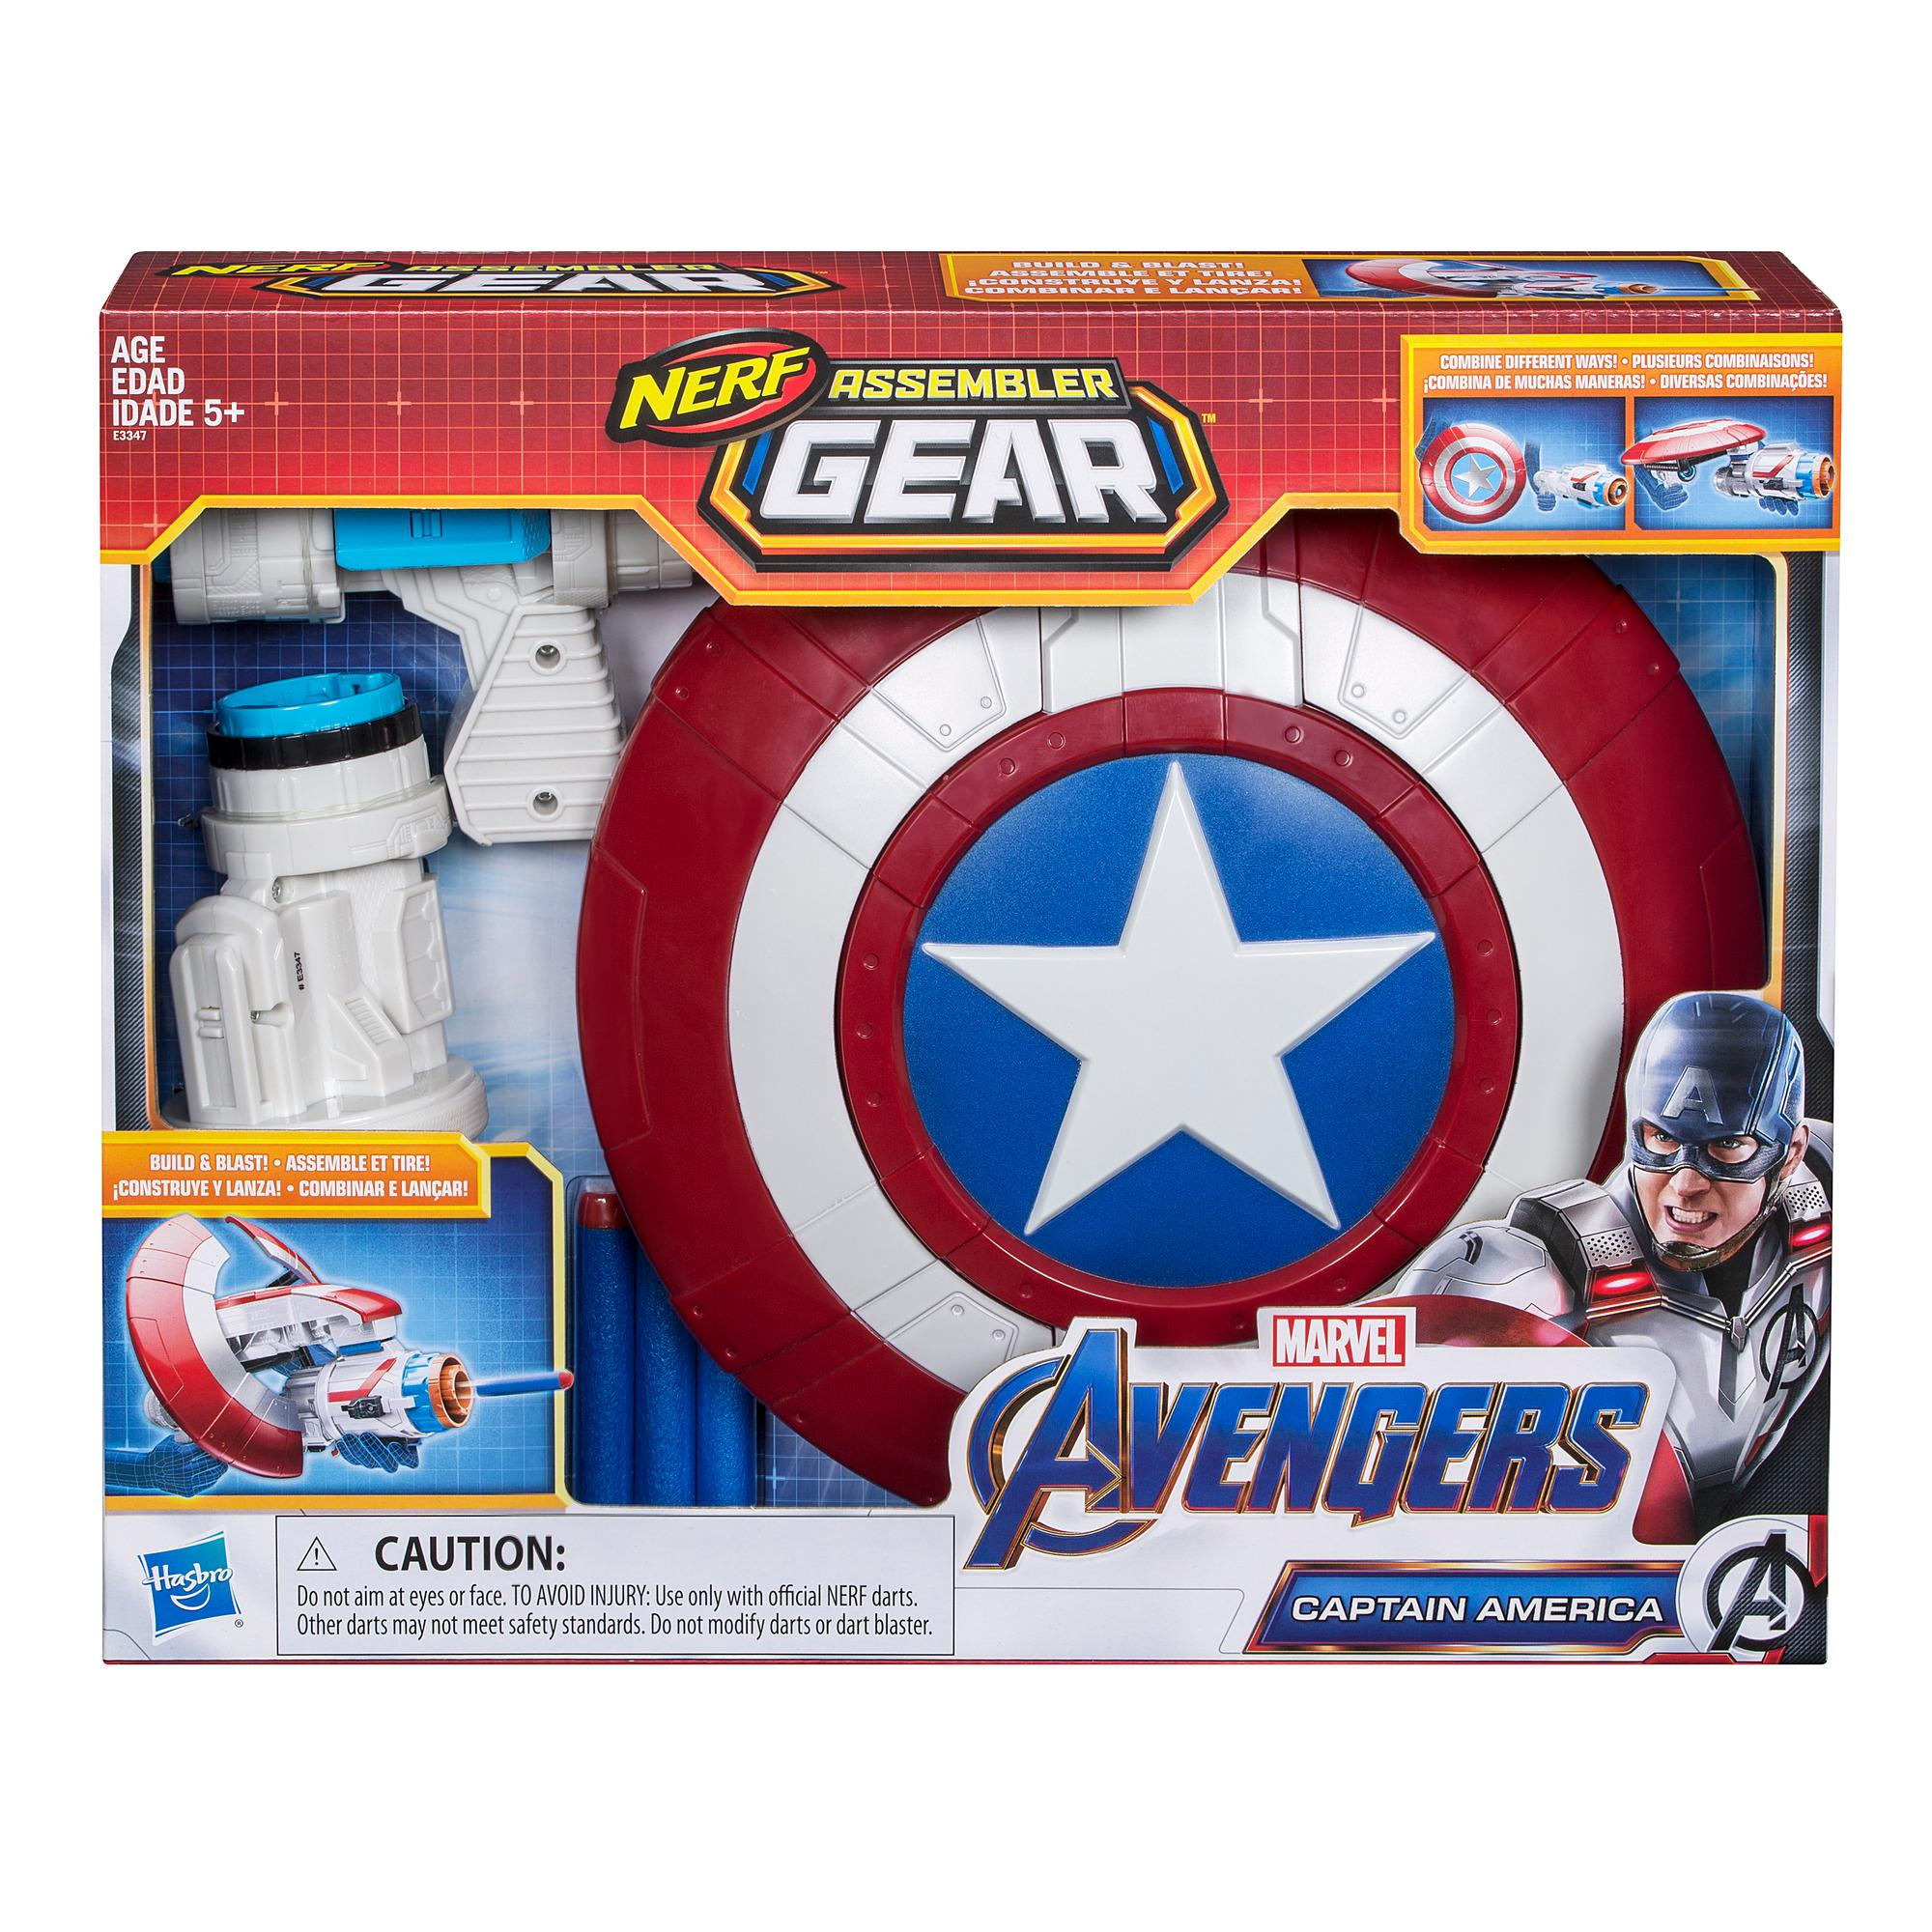 AVN FILM - ASSEMBLER GEAR 2.0 CAPTAIN AMERICA